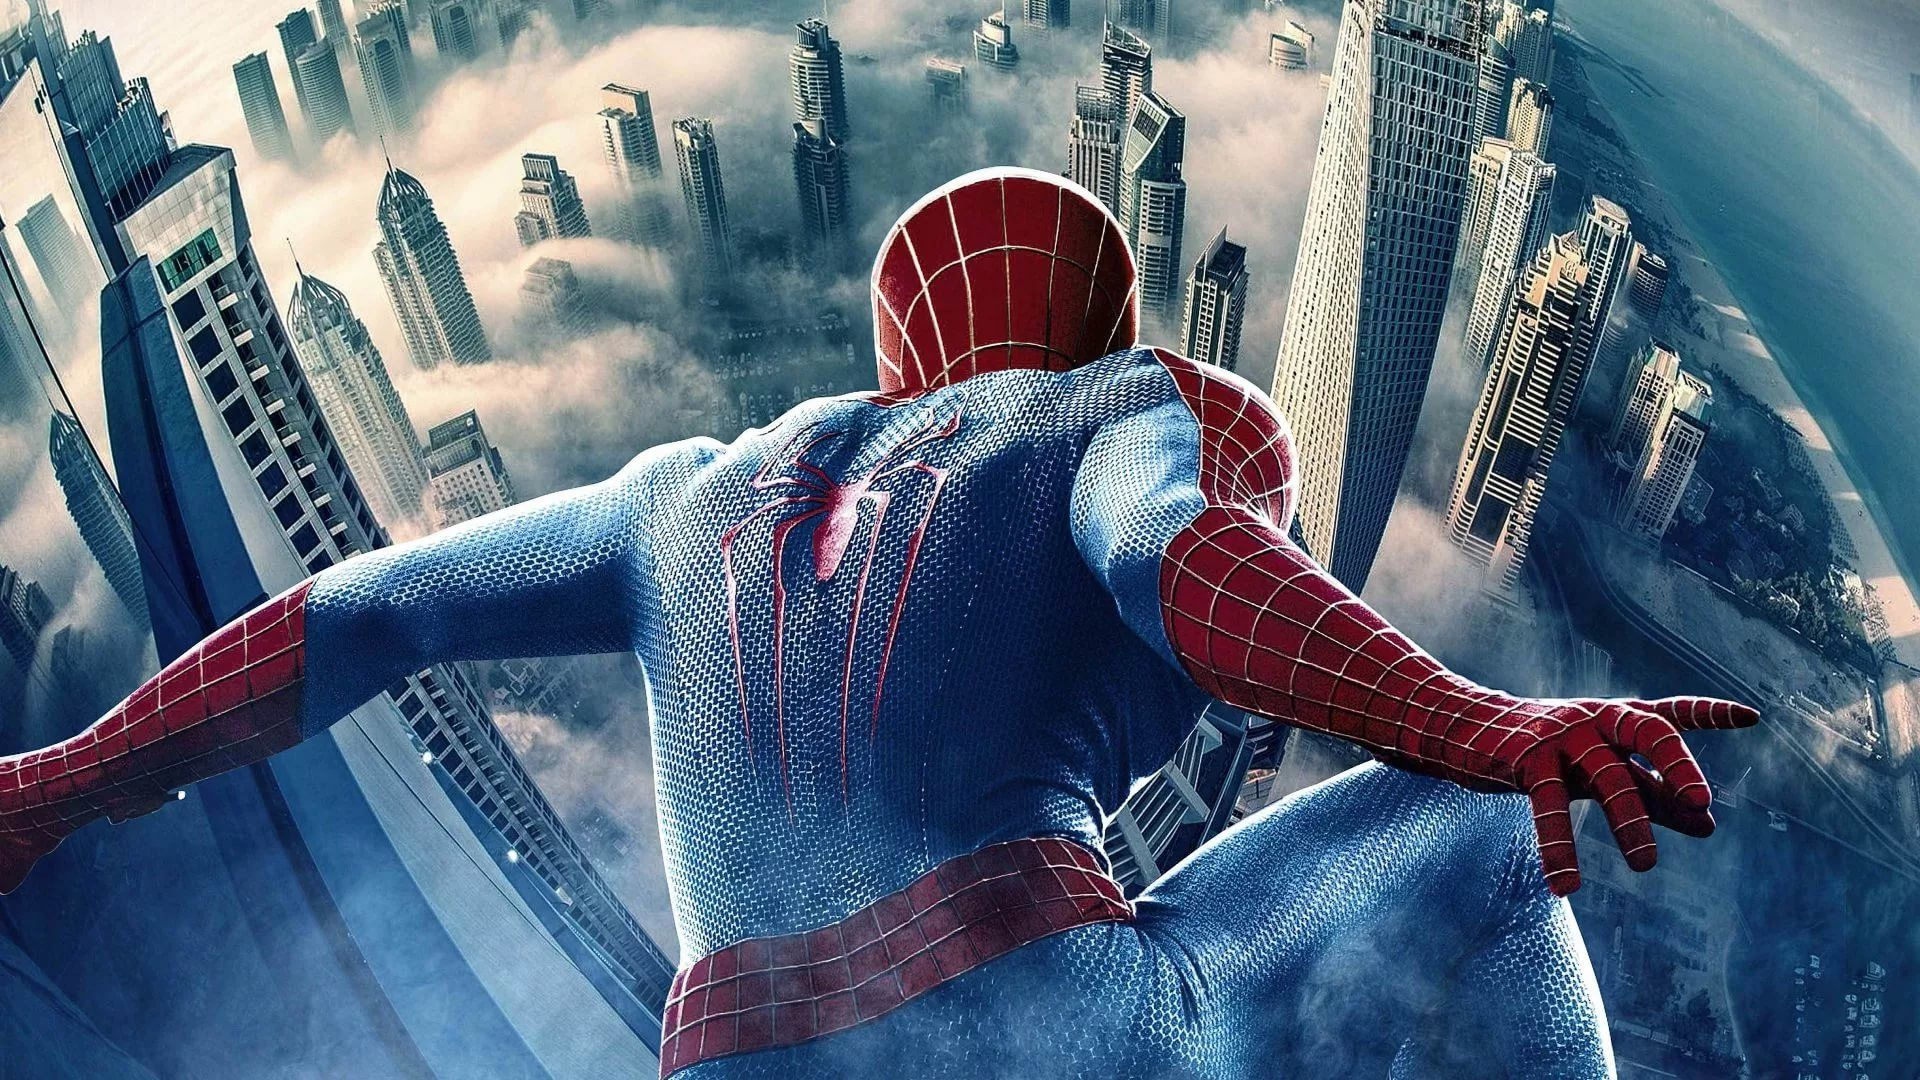 Spiderman desktop wallpaper download